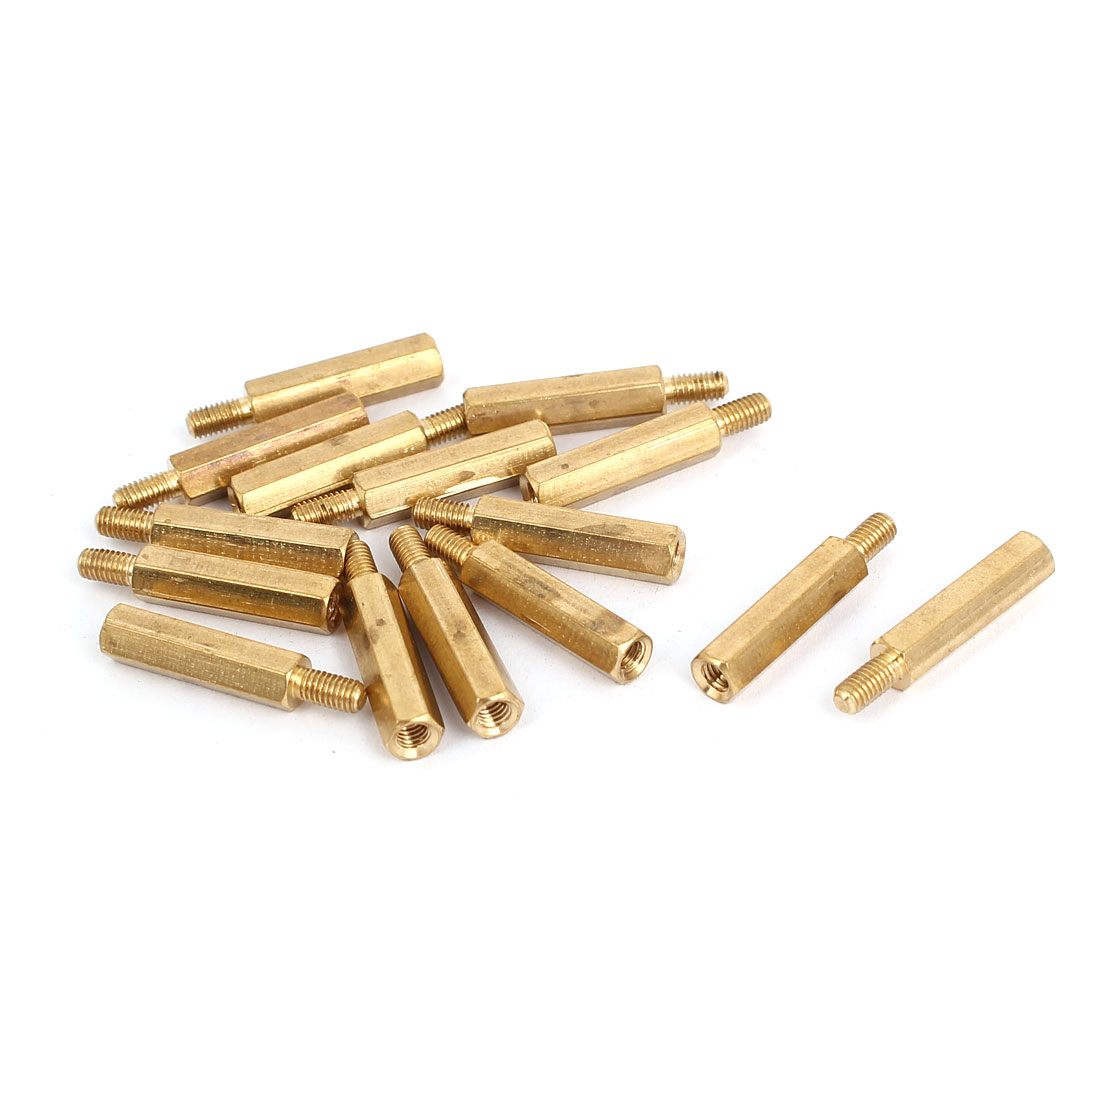 M3 Male to Female Thread Insulated Brass Standoff Hexagonal Spacer 18+6mm Long 15pcs